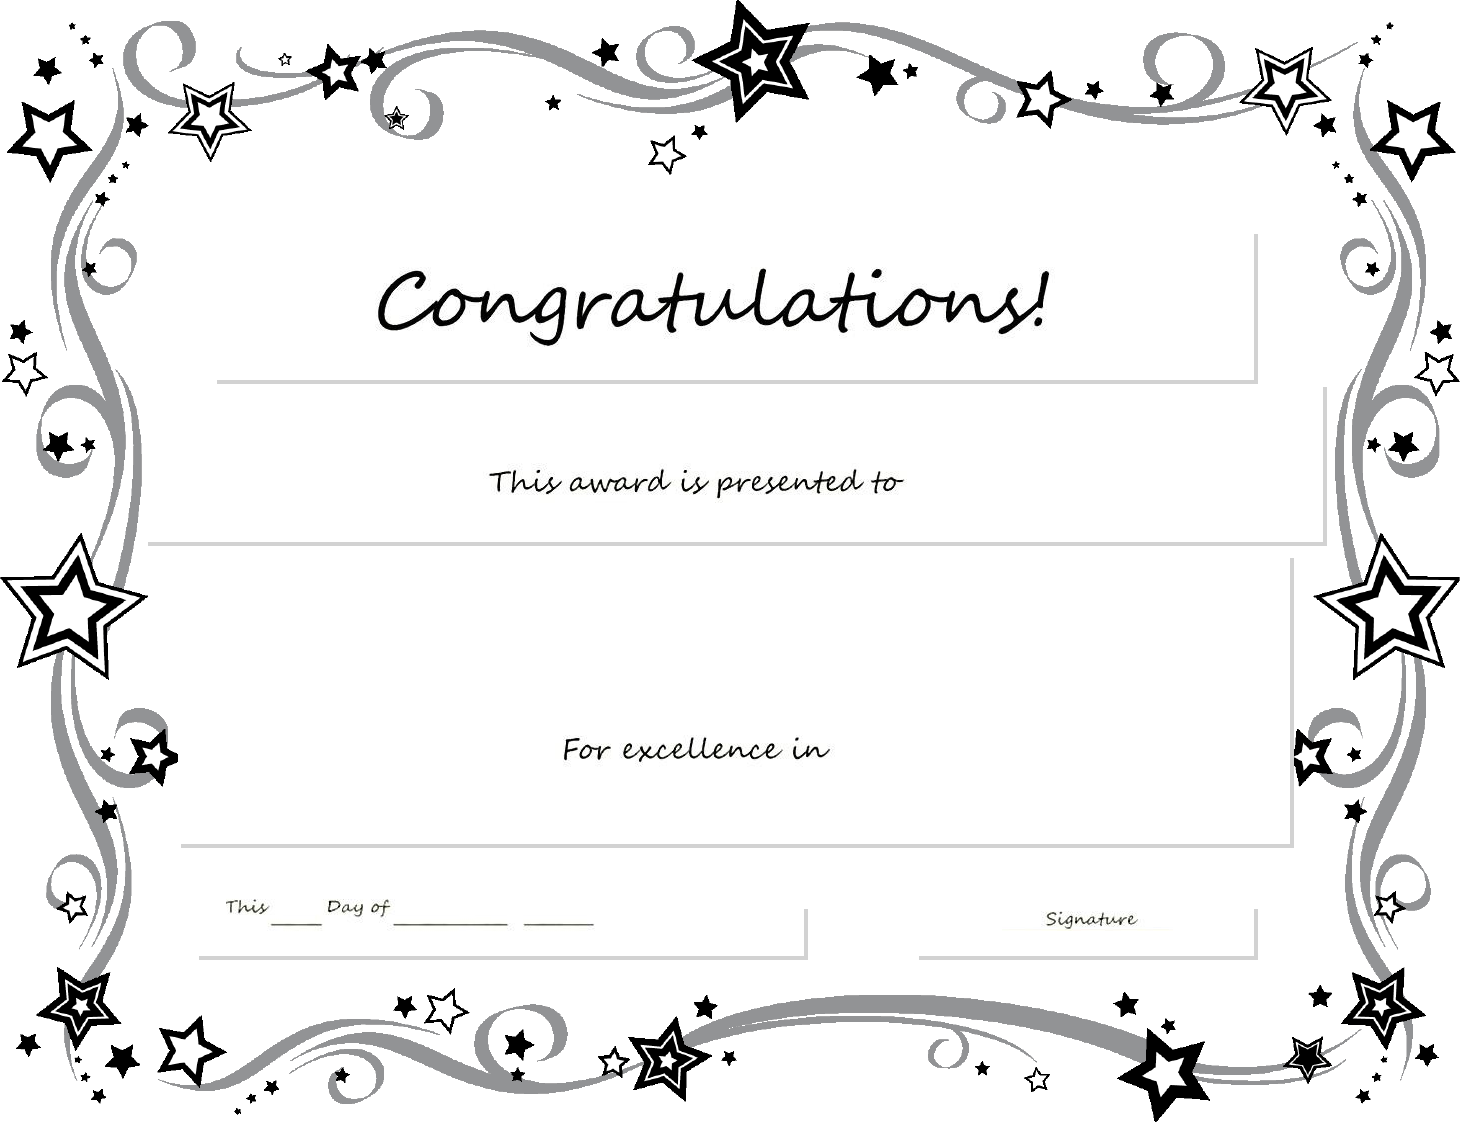 Free Printable Certificates Templates Word Sample – Certificate of Excellence Template Word